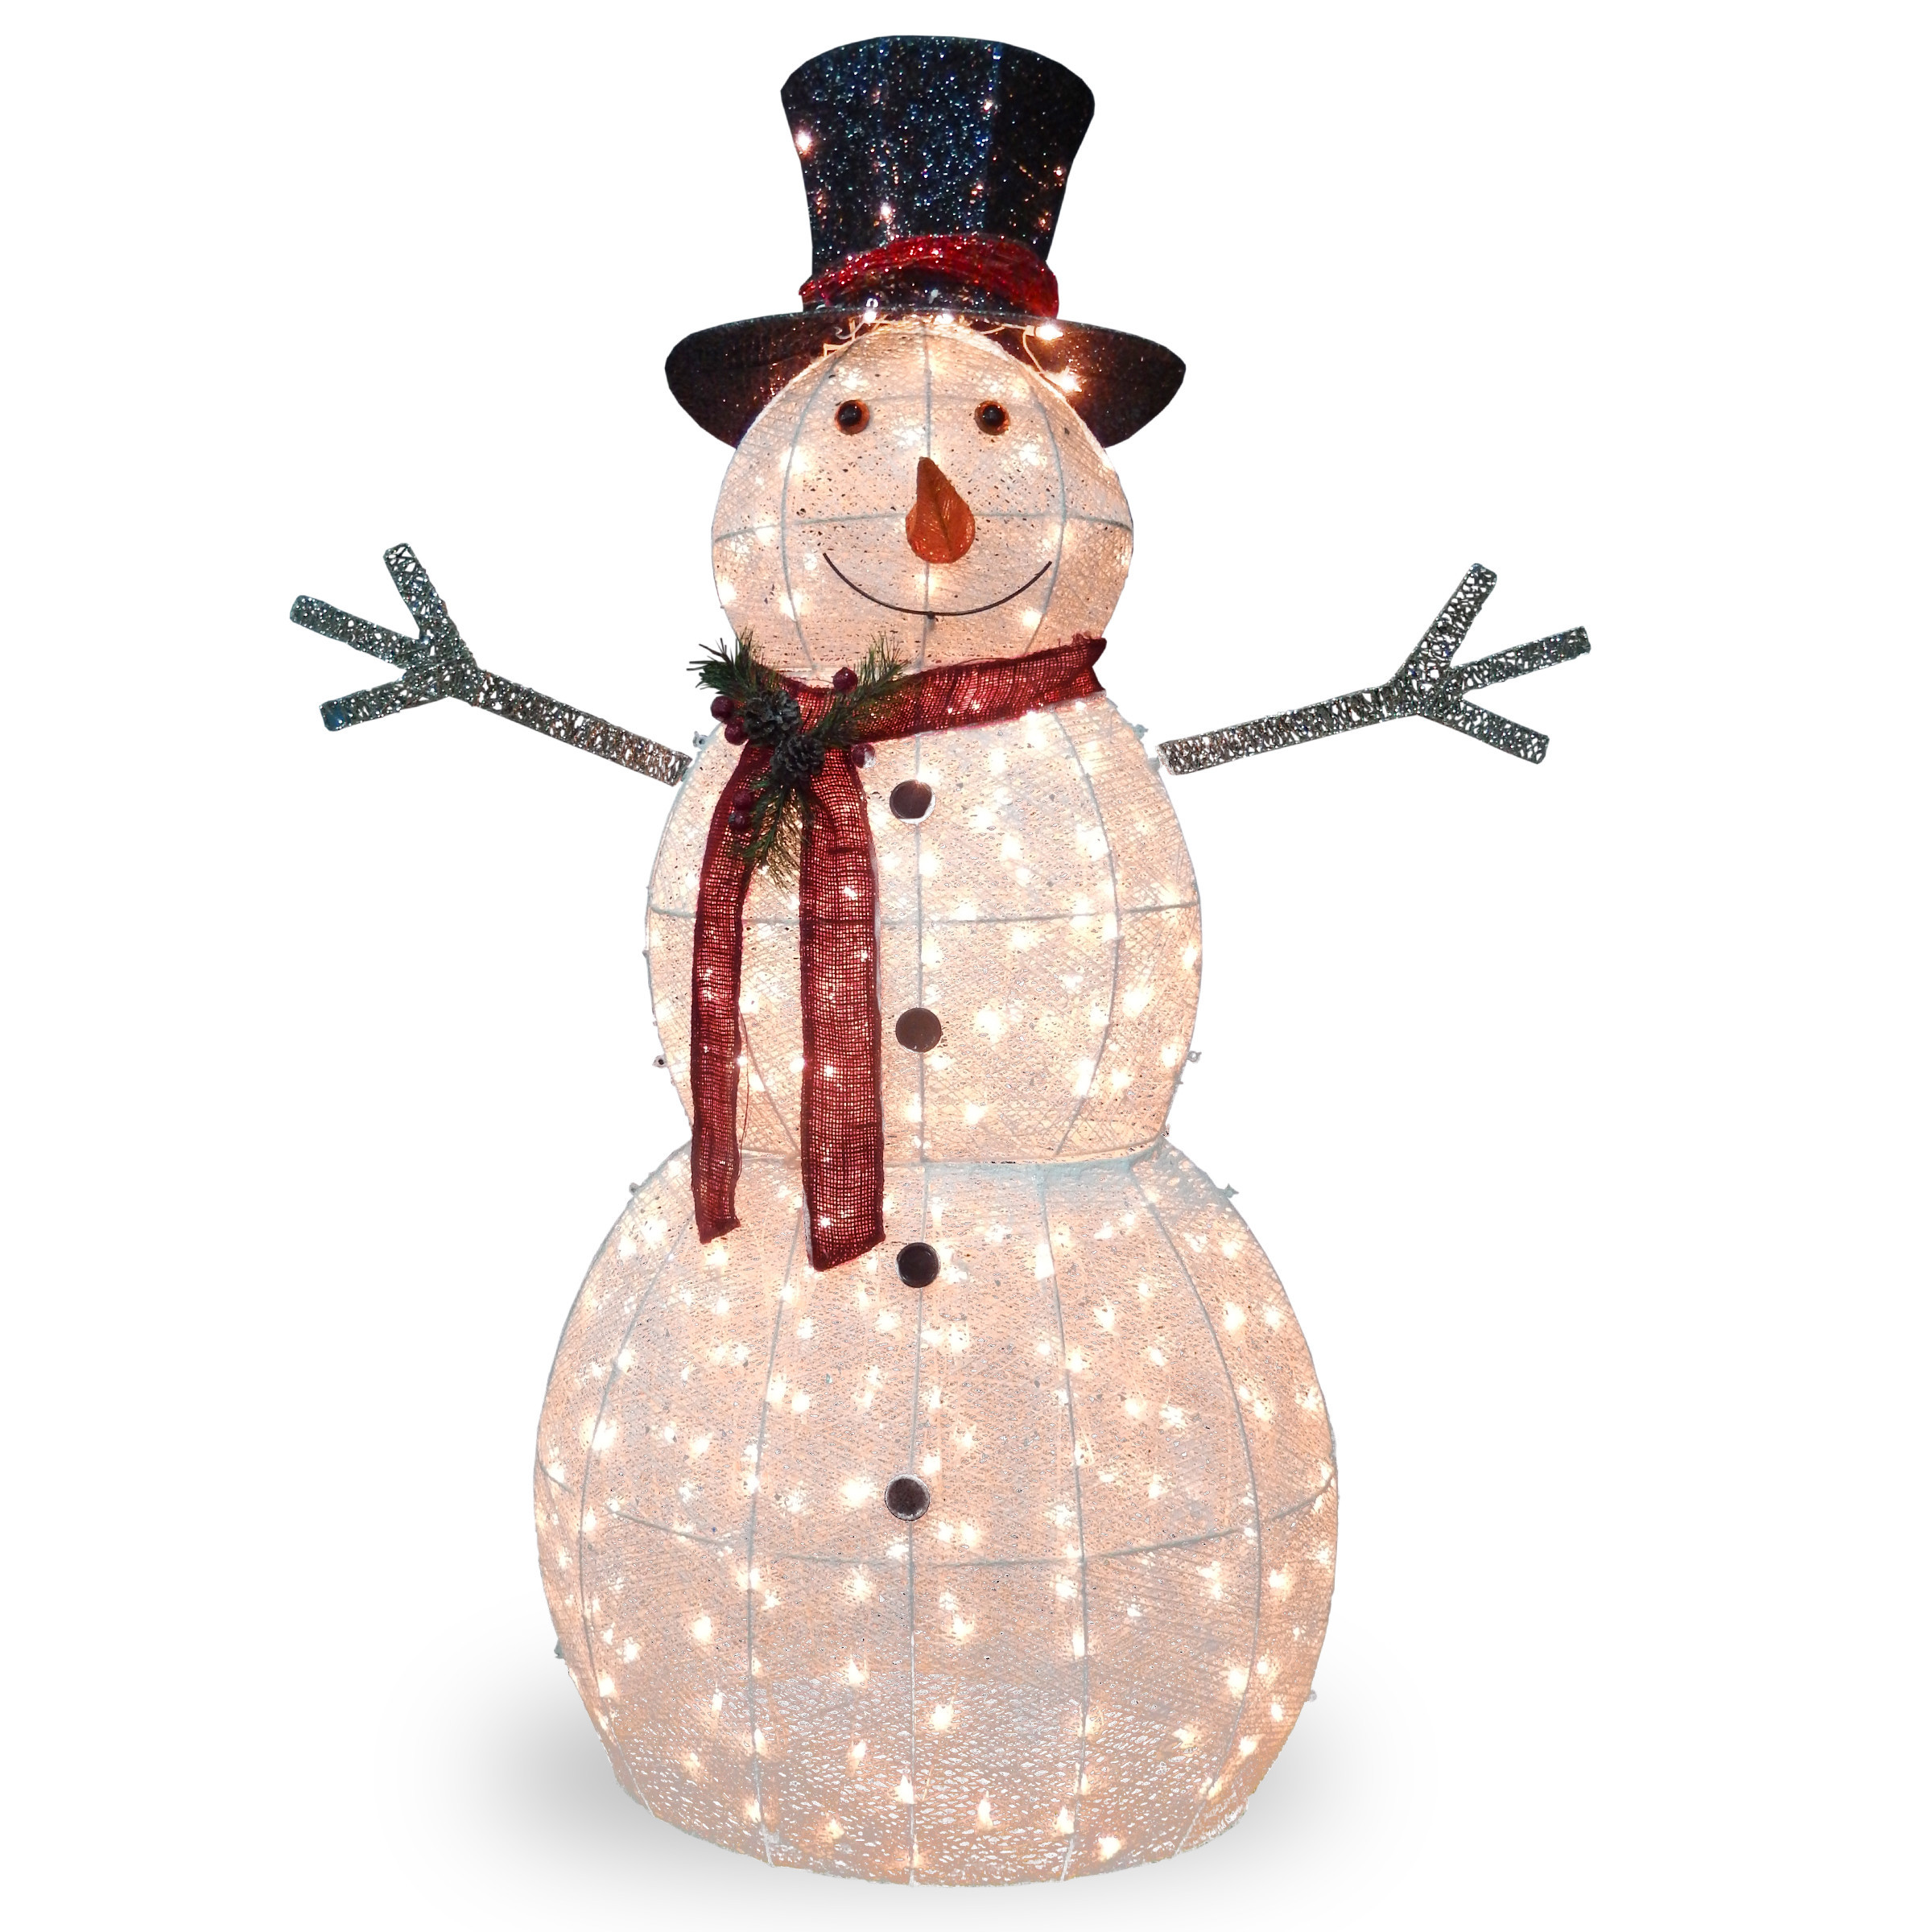 Elegant Crystal Snowman Christmas Decoration Christmas Snowman Decorations Of Adorable 41 Models Christmas Snowman Decorations